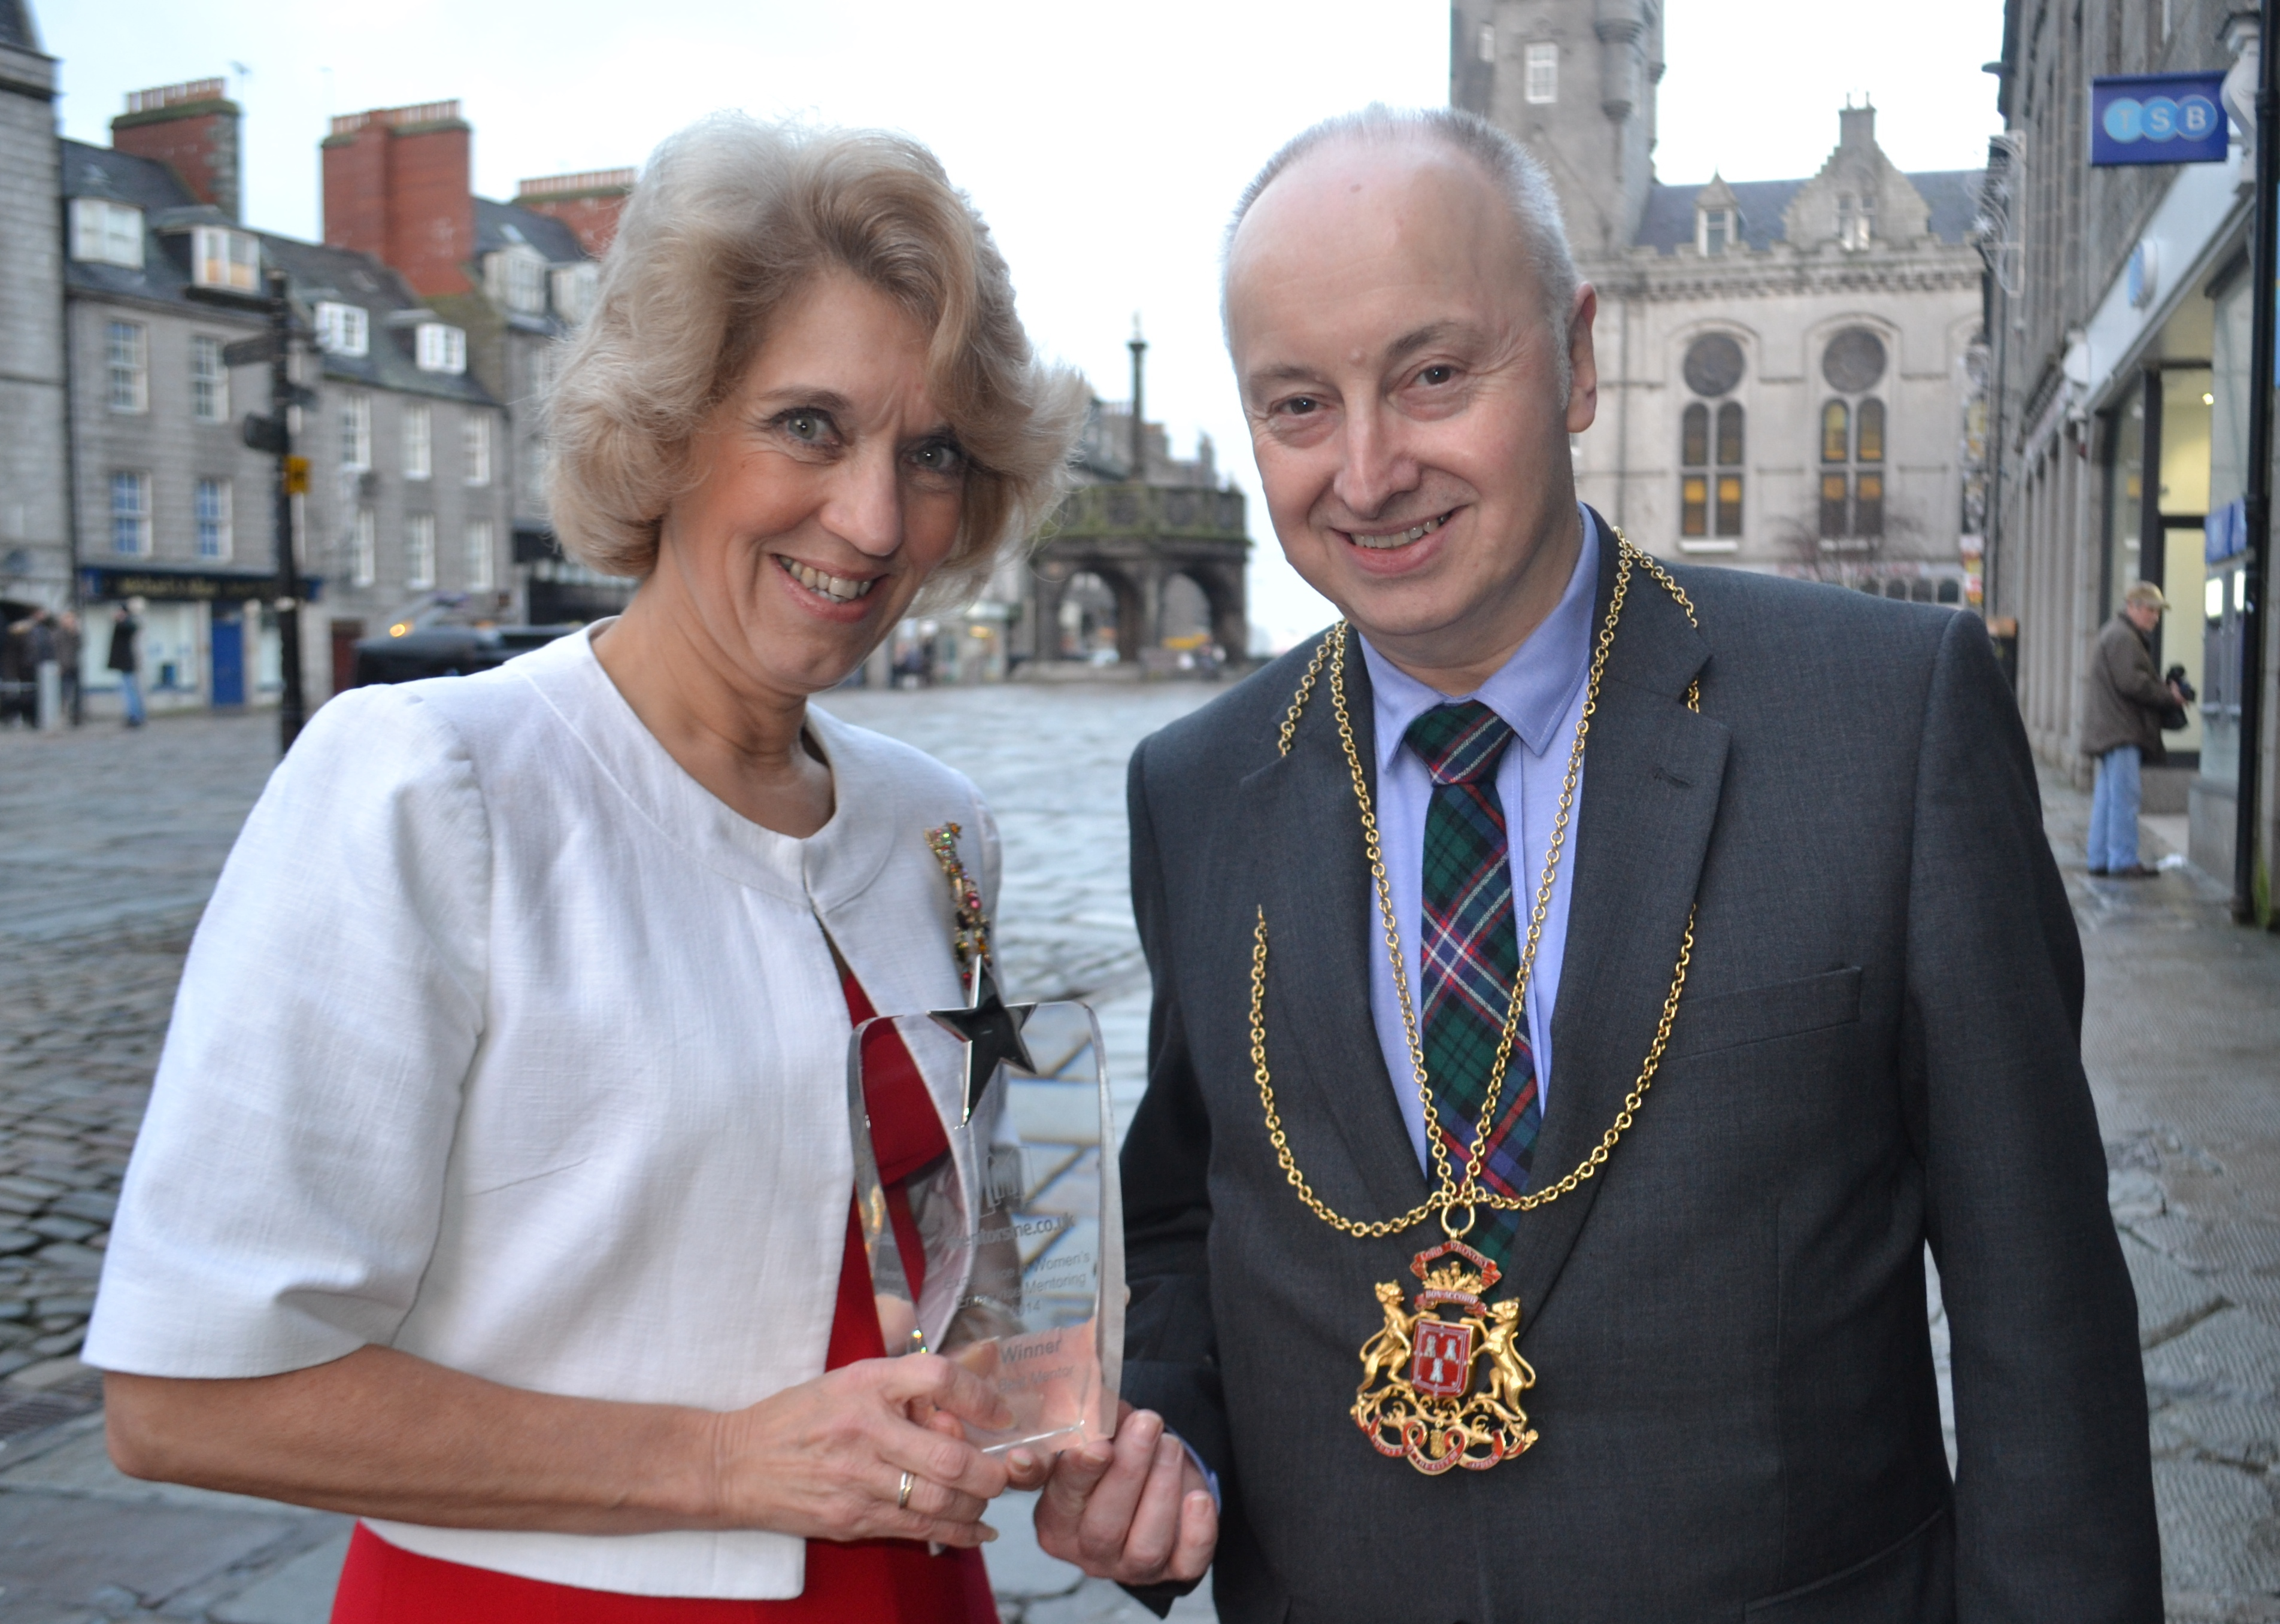 Jeanette Forbes, CEO of the PCL Group with Lord Provost George Adam with the Best Mentor Award which Jeanette won in the British Chambers of Commerce Excellence in Women's Enterprise Mentoring Awards in London